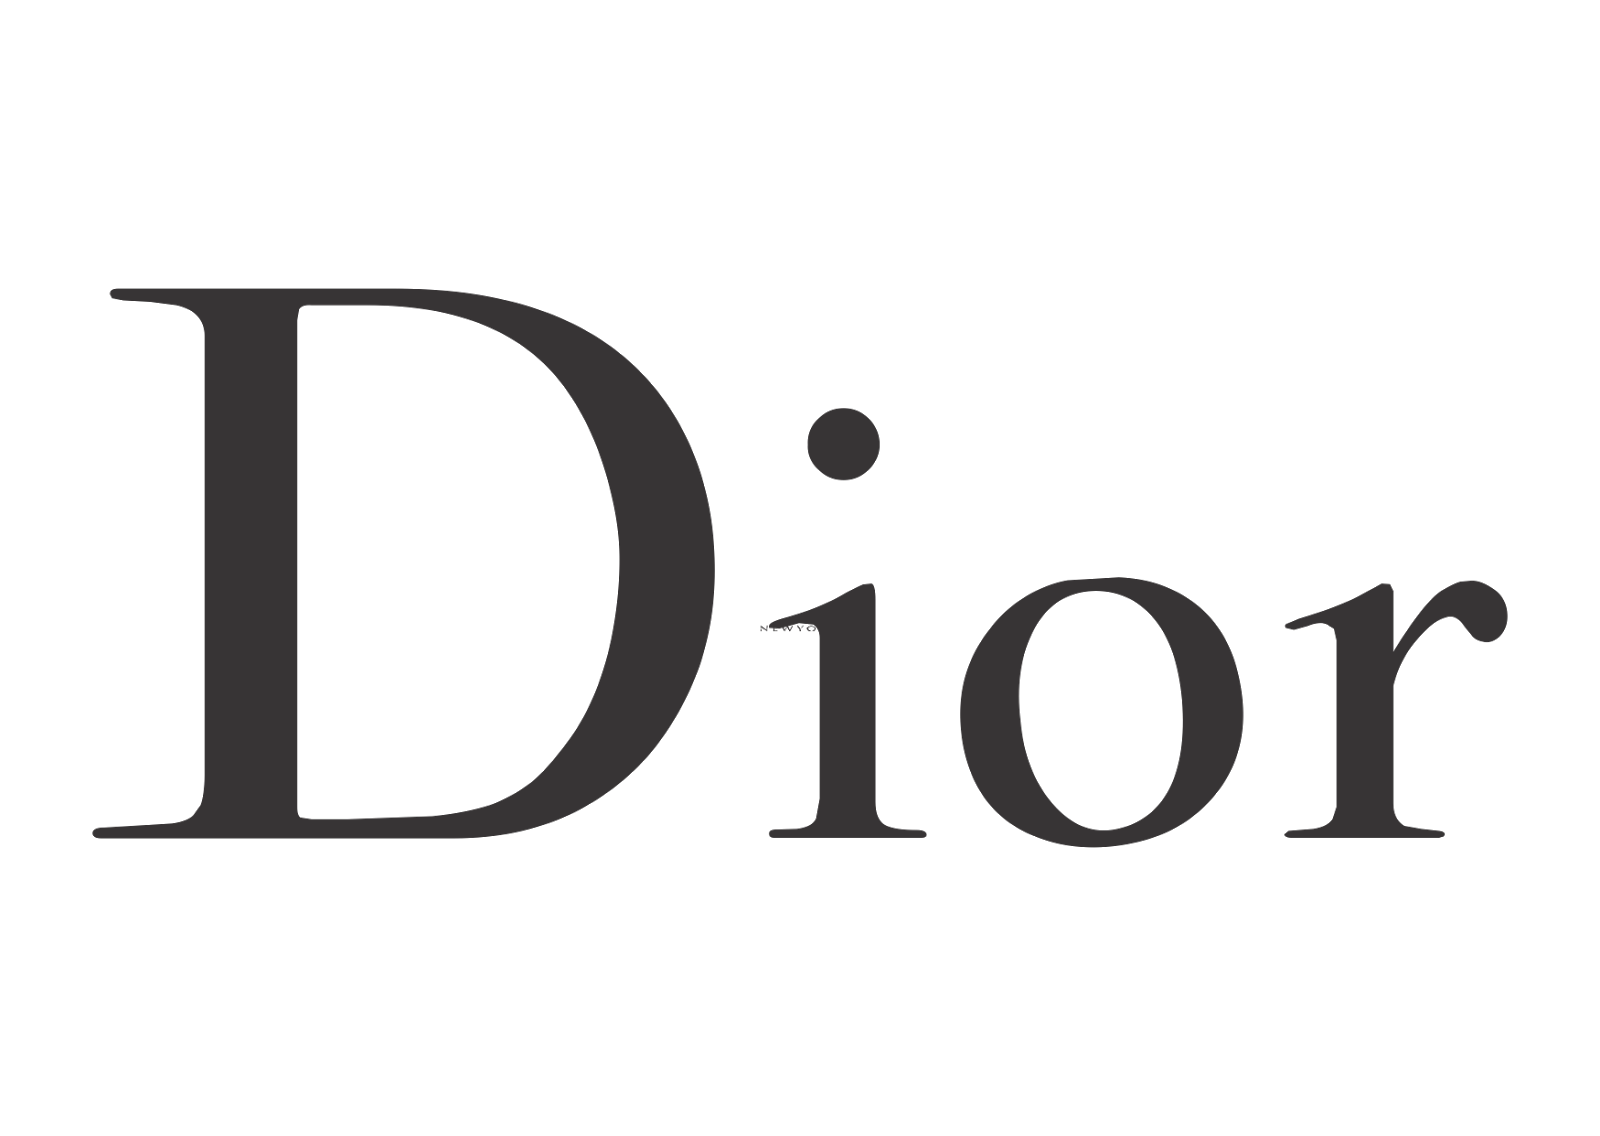 Christian vector logo. Dior pinterest logos and